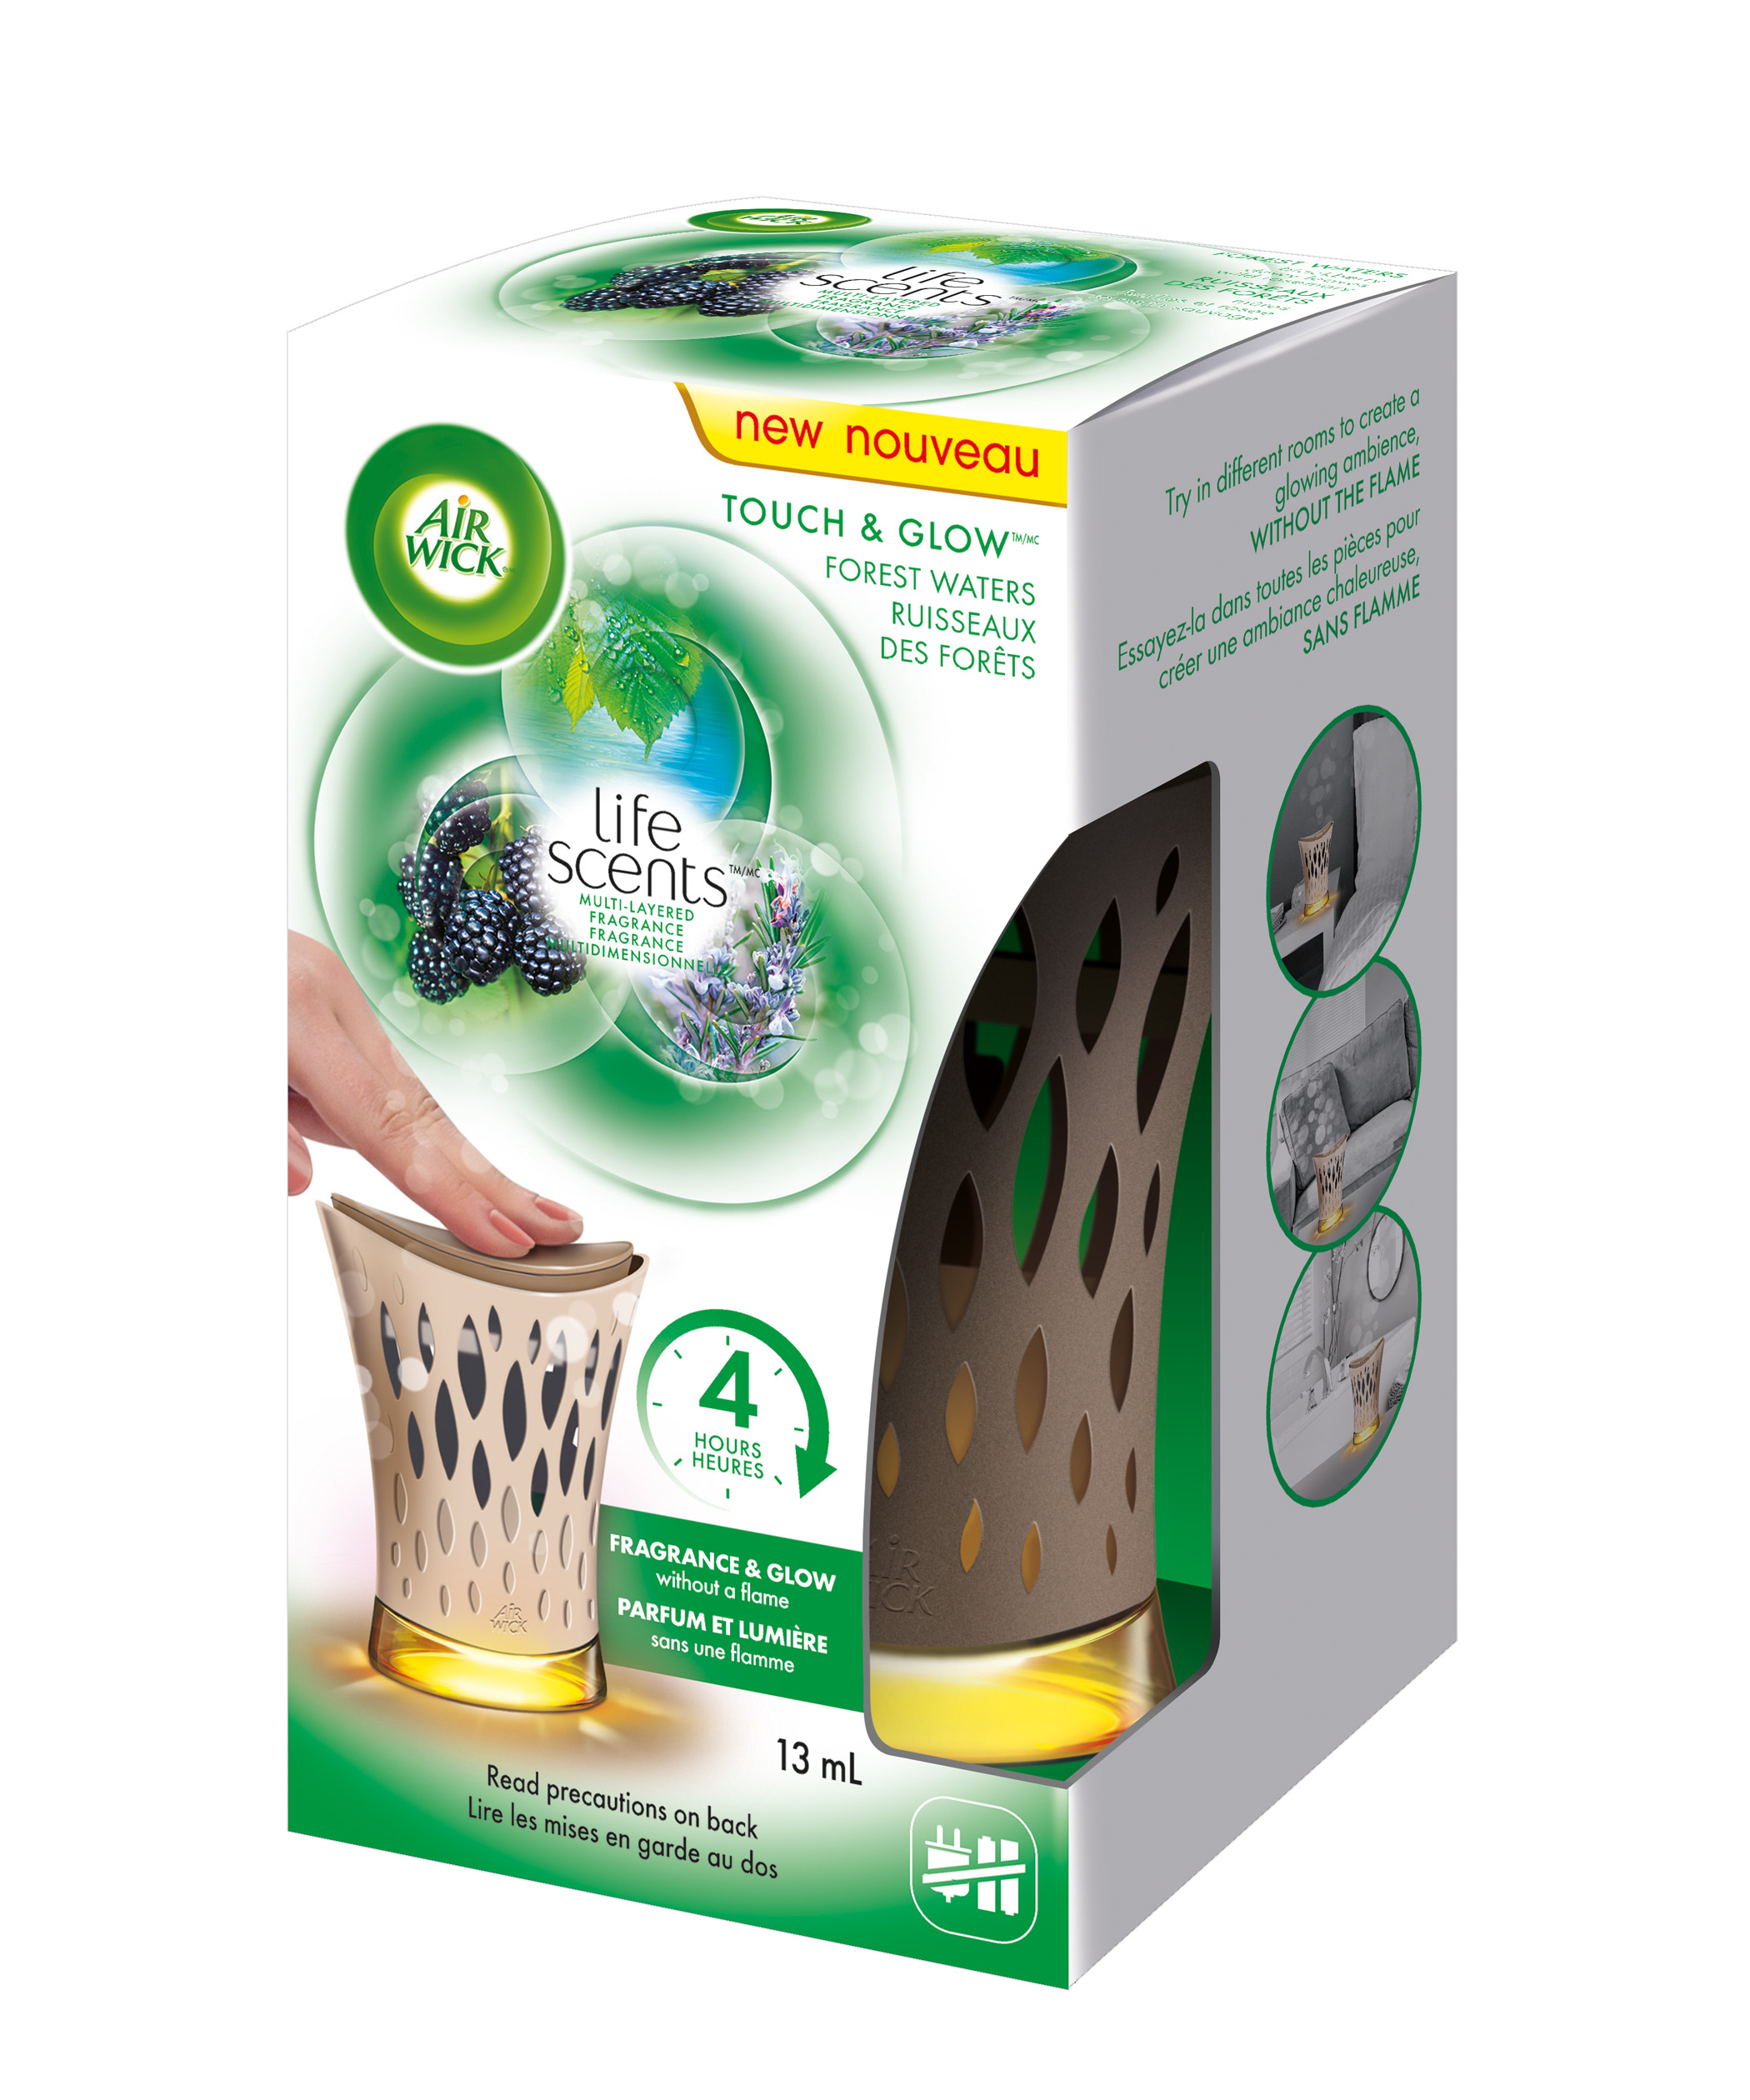 AIR WICK® Touch & Glow™ Life Scents™ - Forest Waters (Canada)